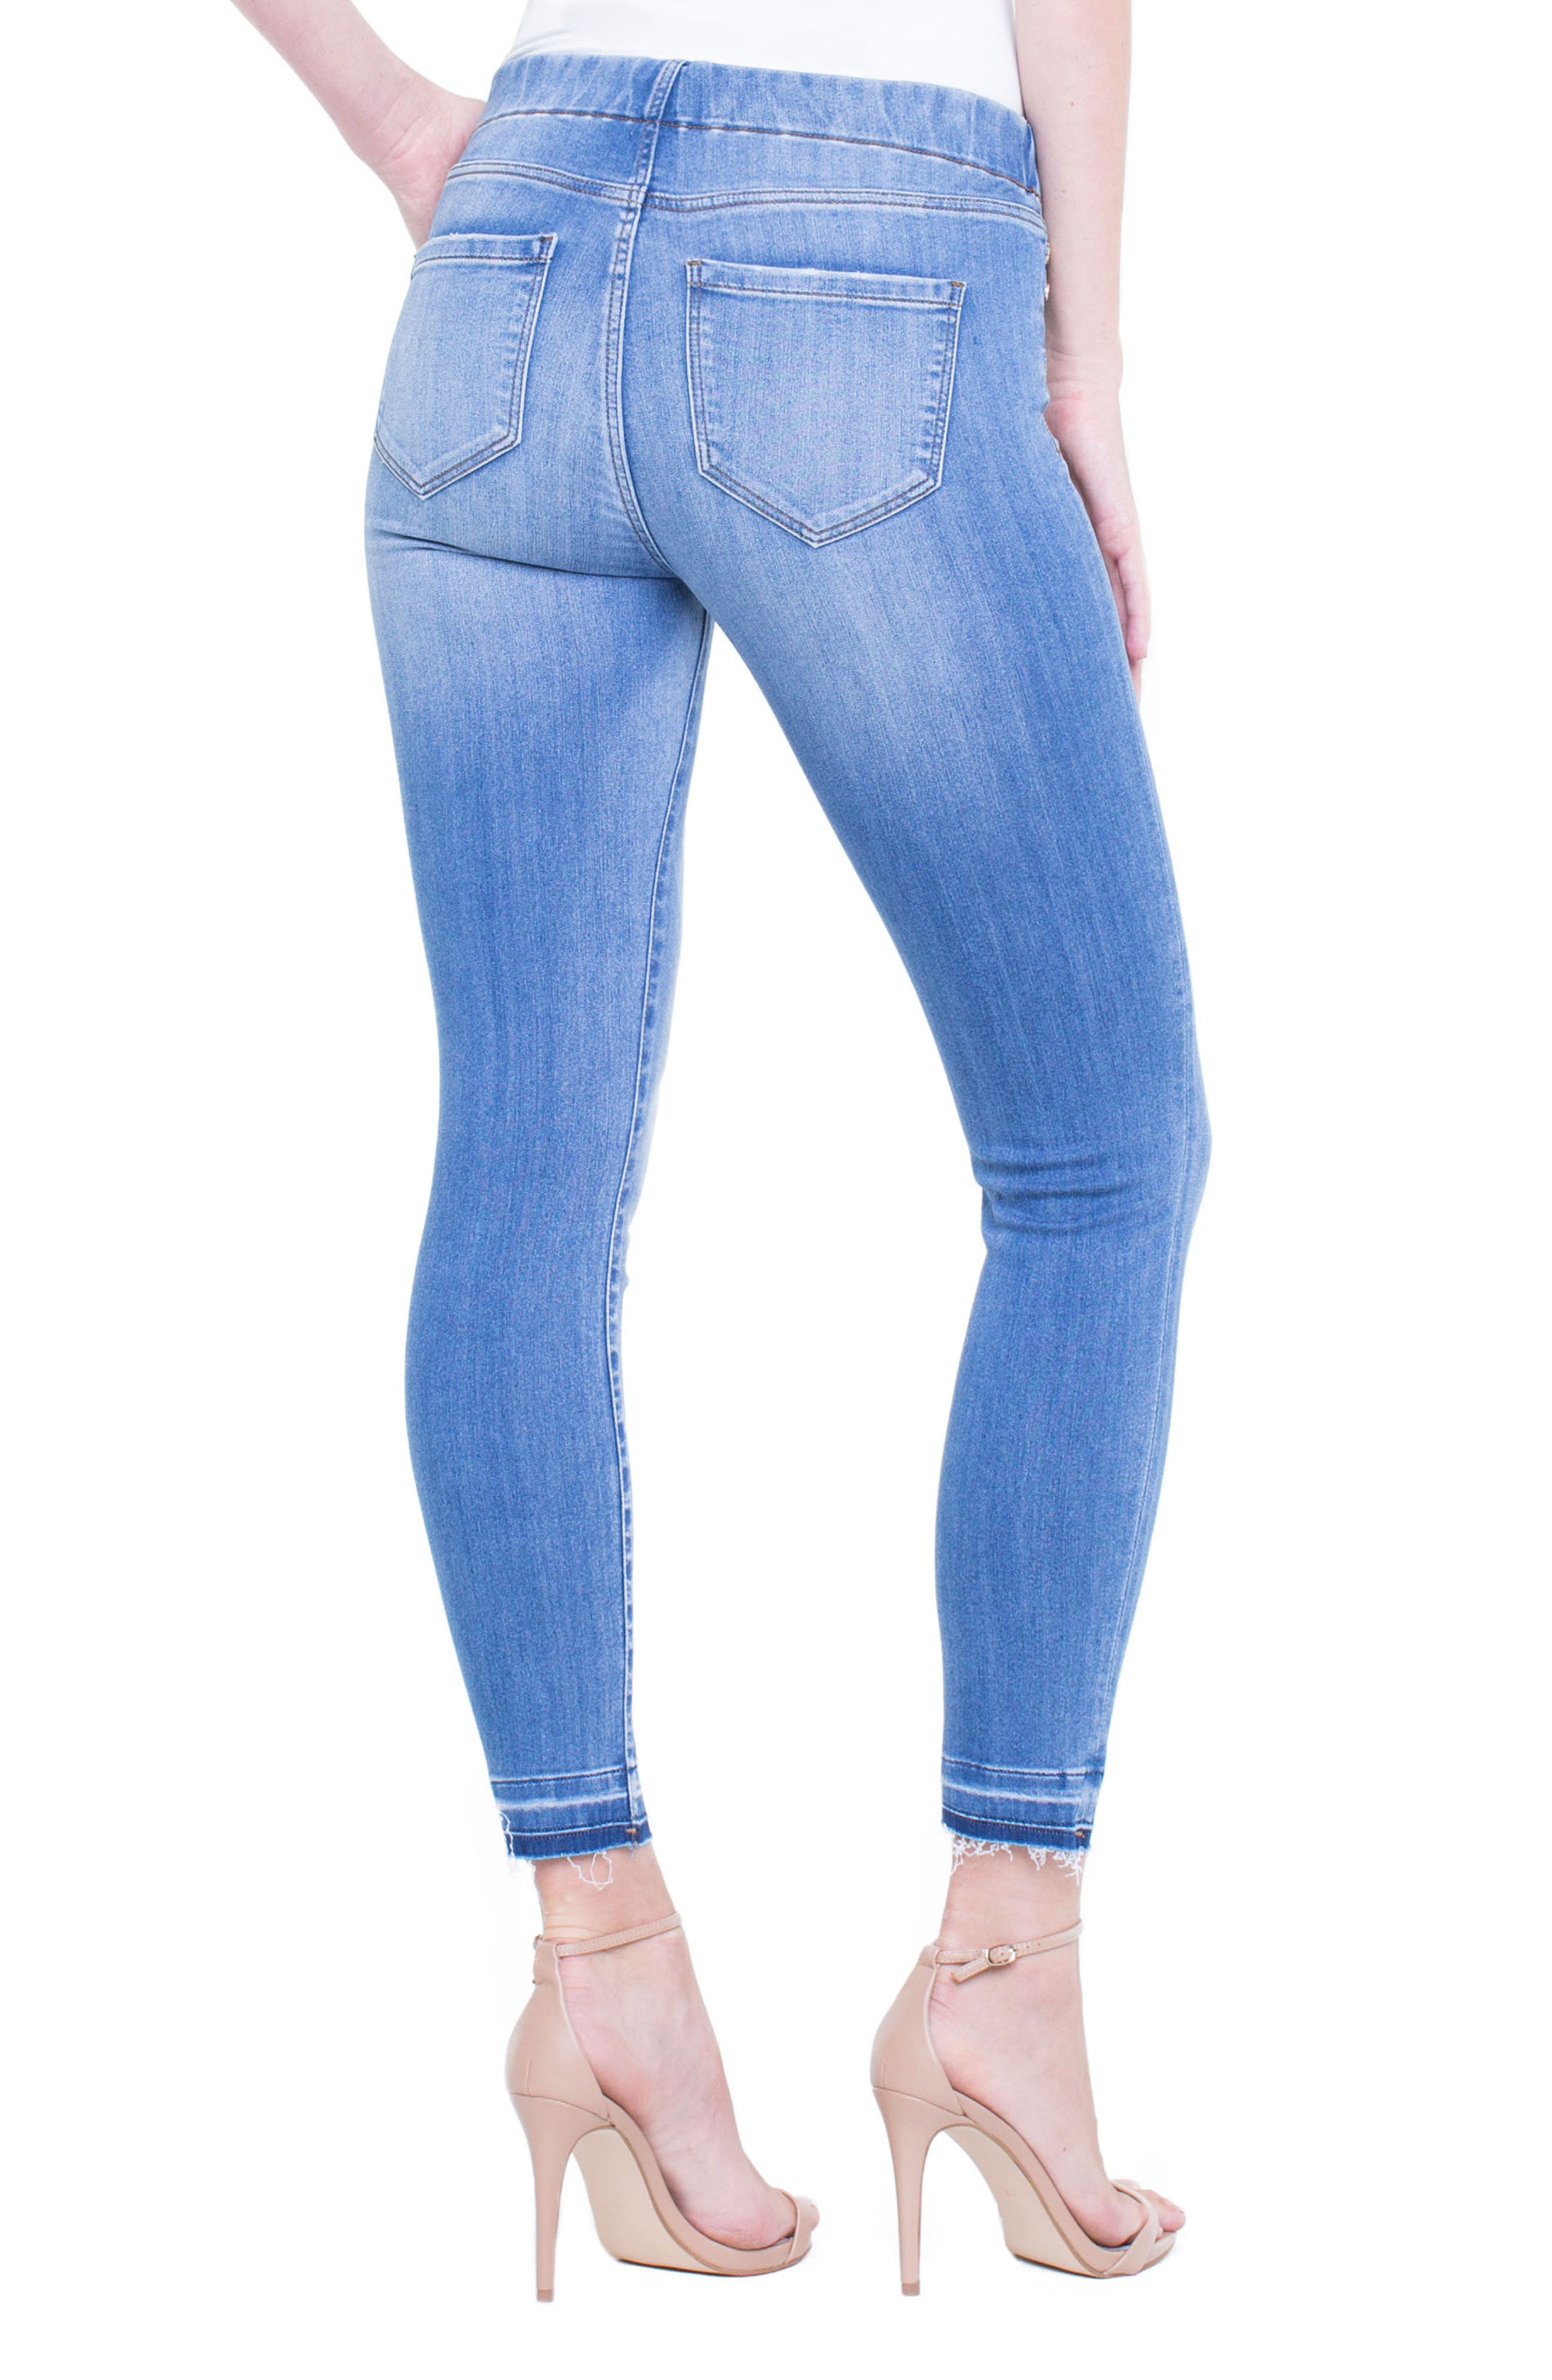 Chloe Release Hem Denim Leggings,                             Alternate thumbnail 2, color,                             RIDGEWAY GRIND